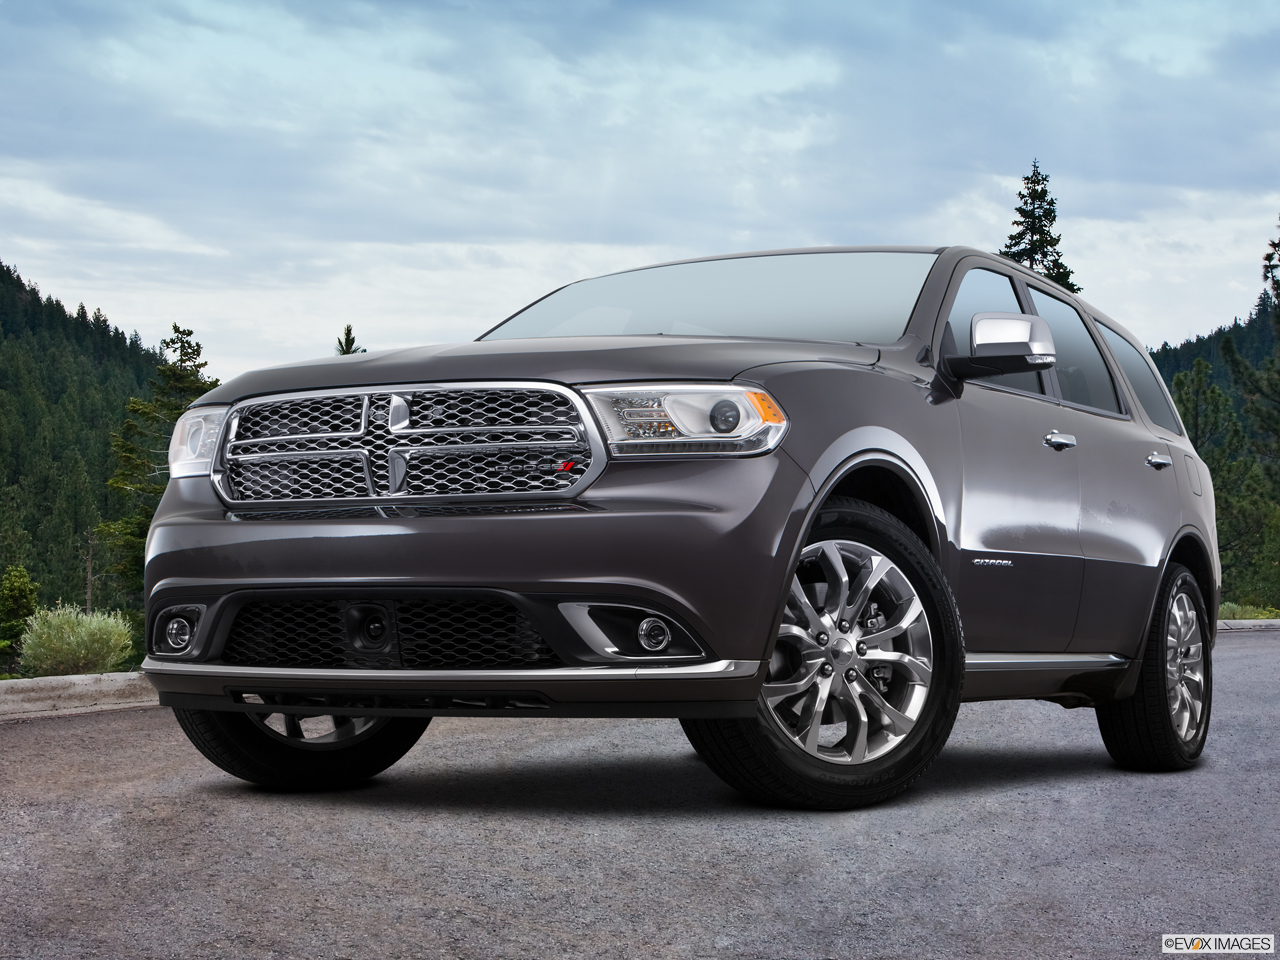 Exterior View Of 2017 Dodge Durango in Fort Pierce